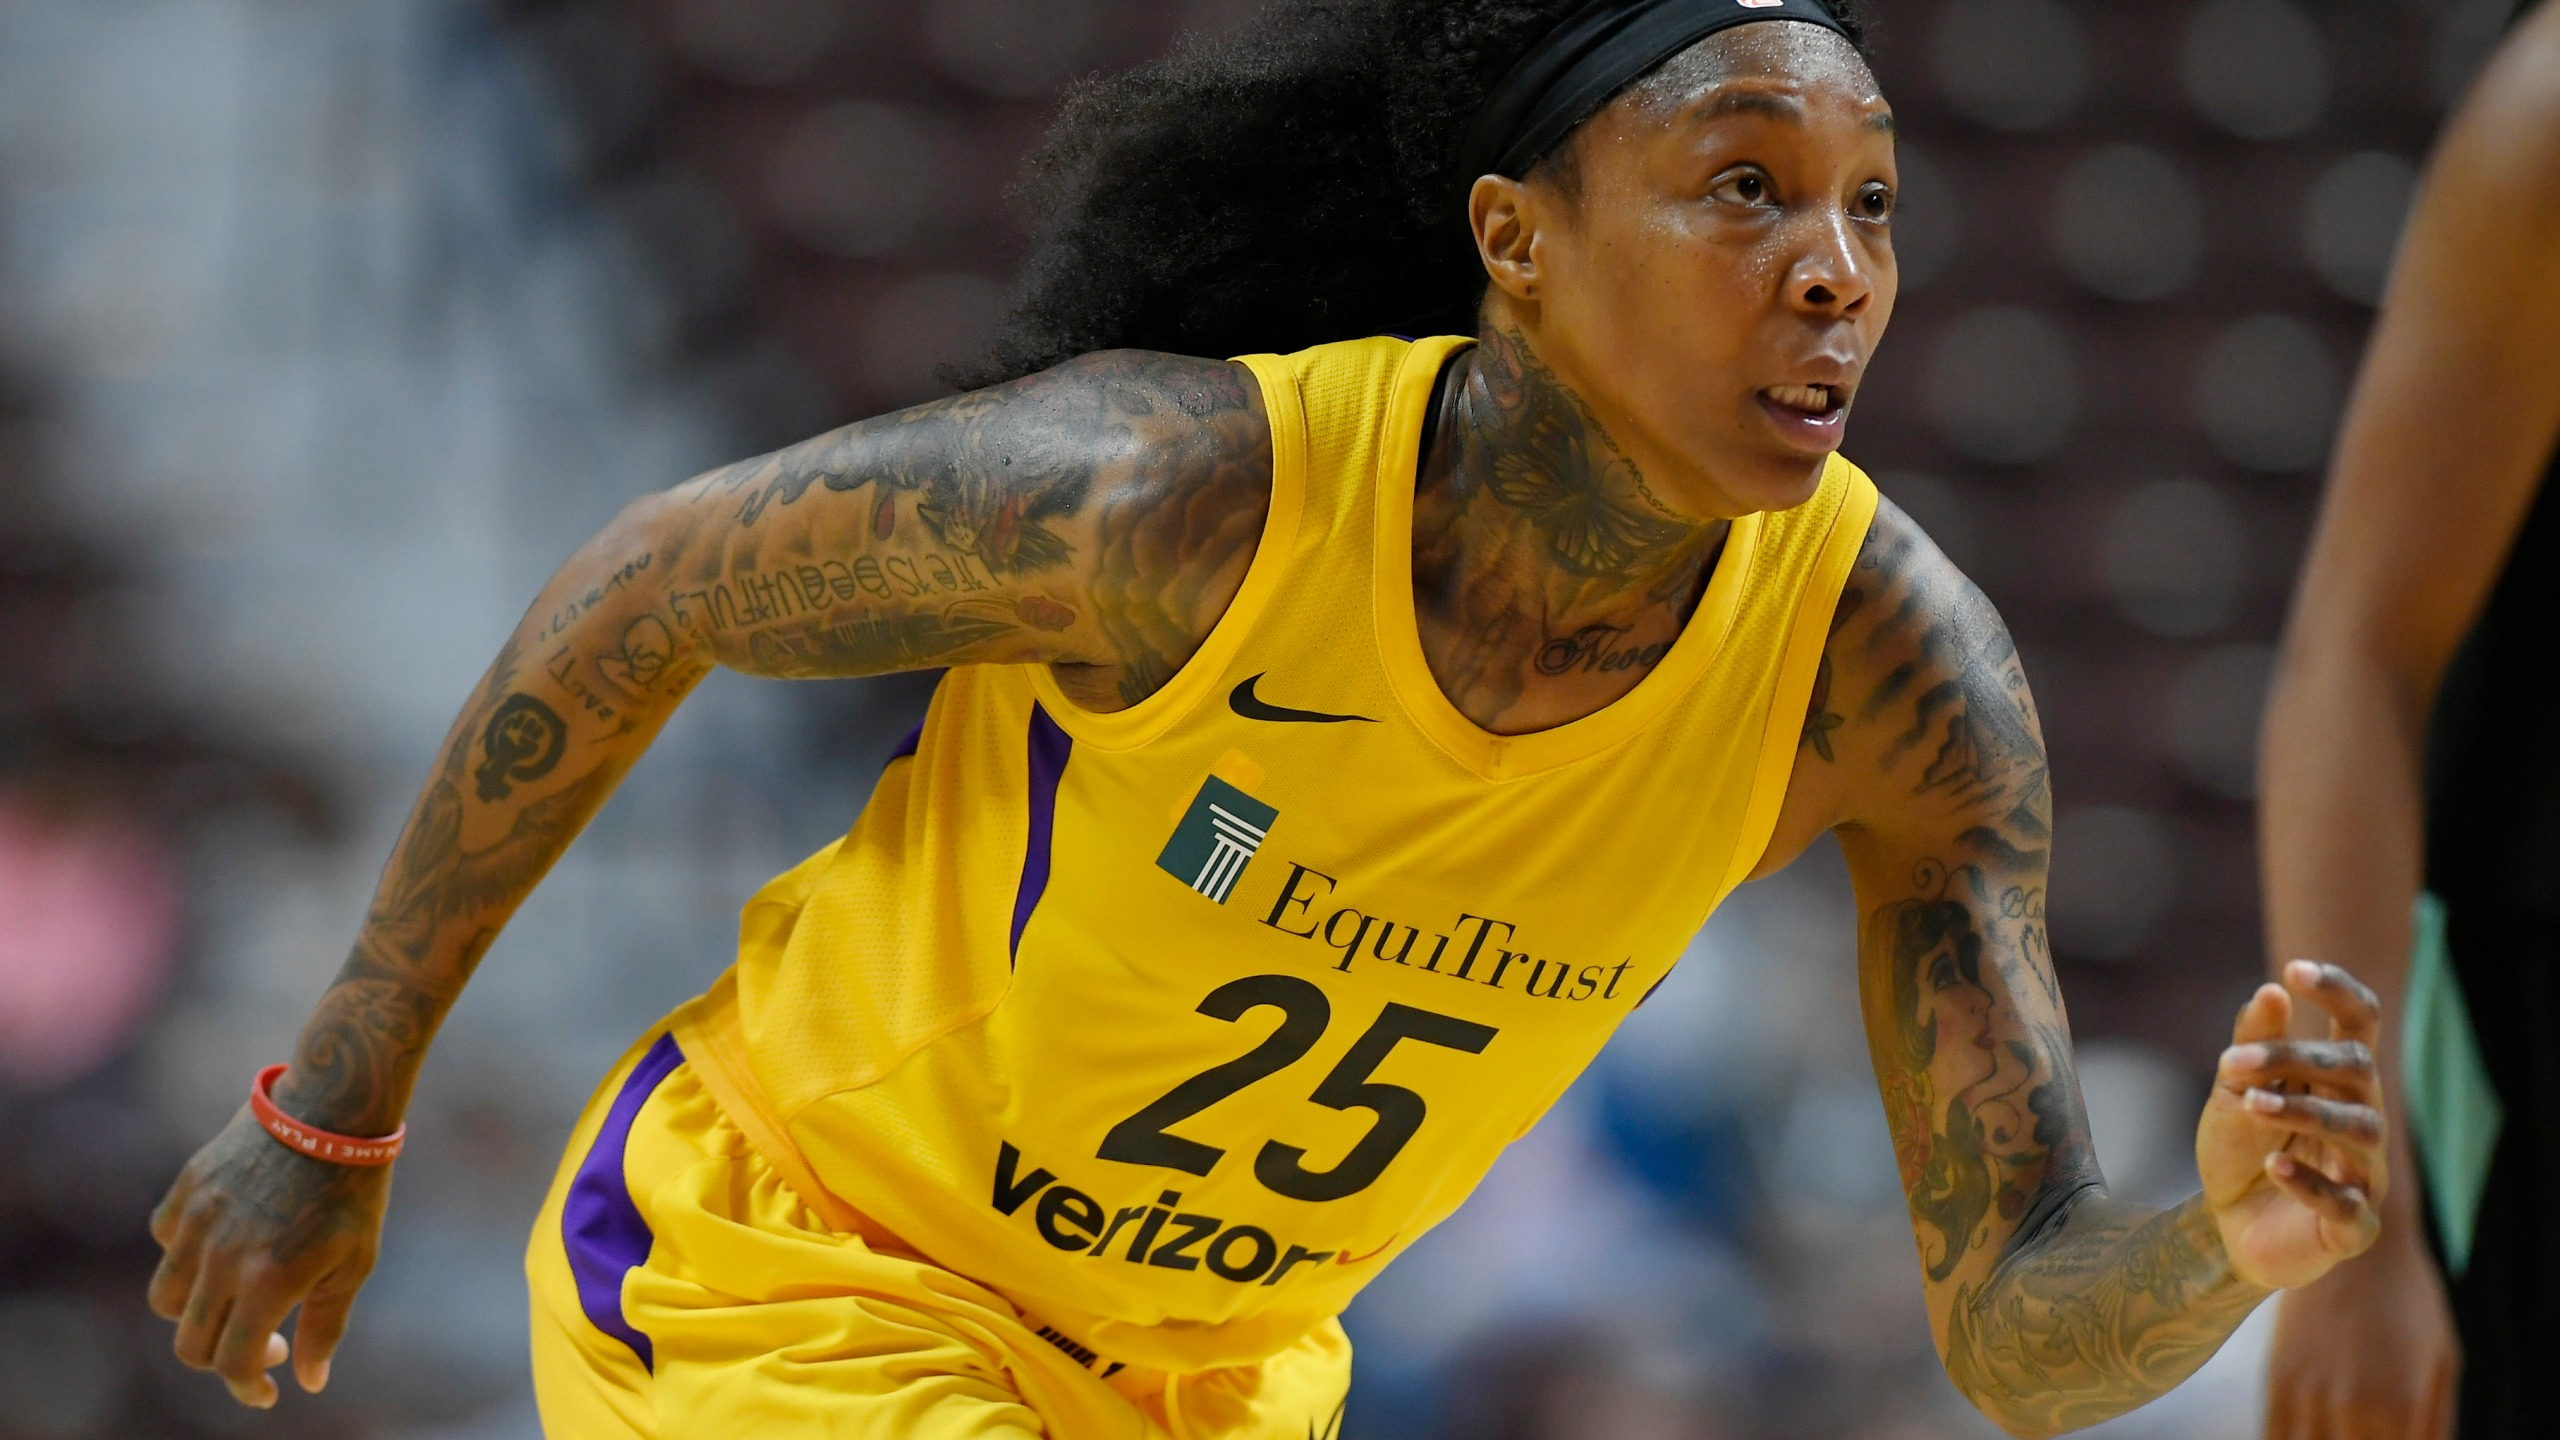 In this May 8, 2018, file photo, Los Angeles Sparks' Cappie Pondexter plays during a preseason basketball game in Uncasville, Conn. (AP Photo/Jessica Hill, File)